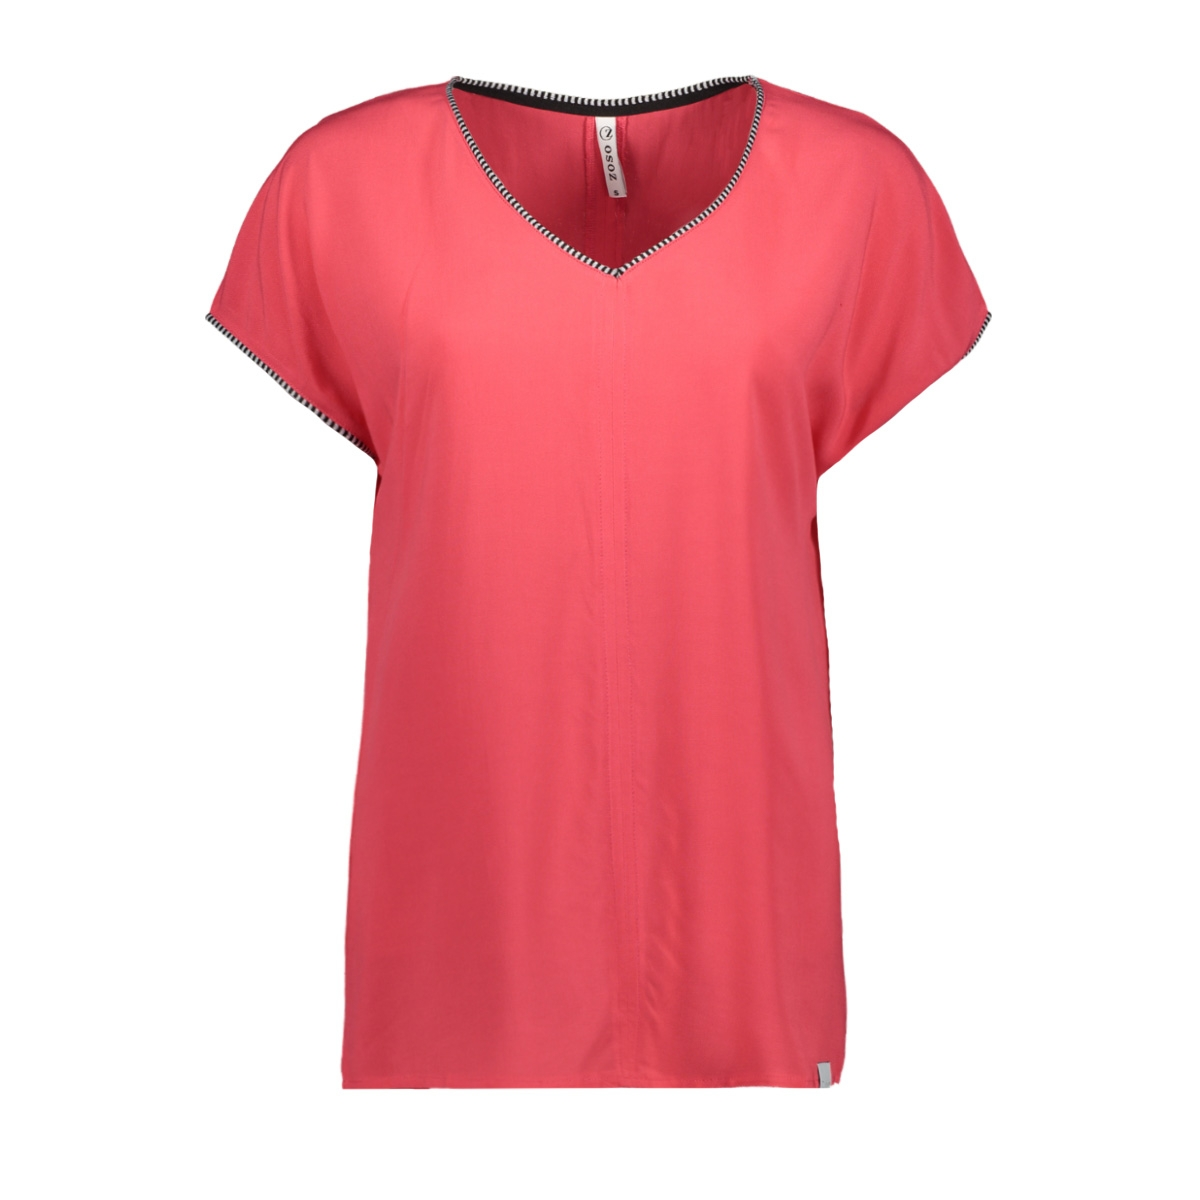 esther shirt with piping 193 zoso t-shirt red